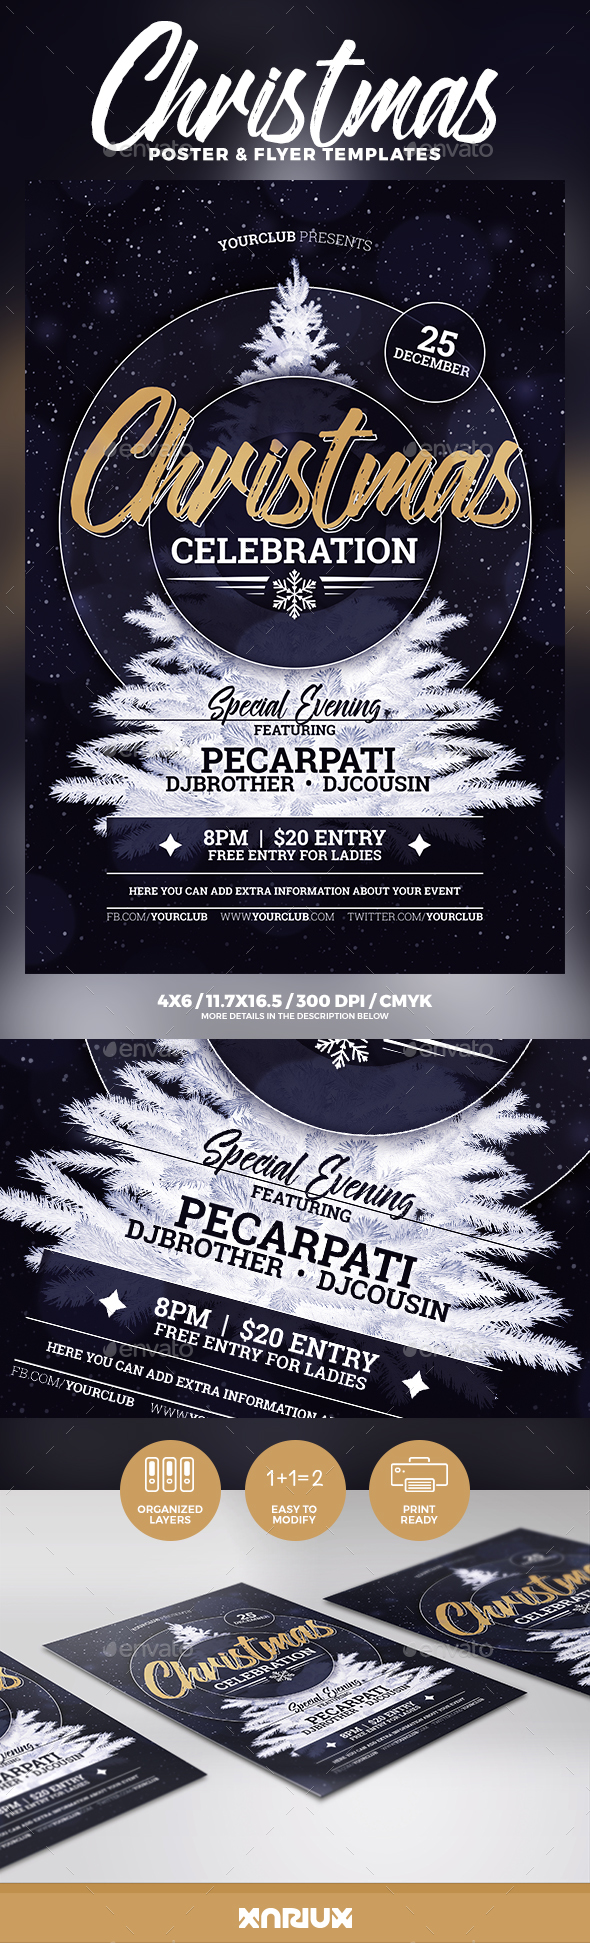 Christmas Celebration Flyer & Poster - Holidays Events